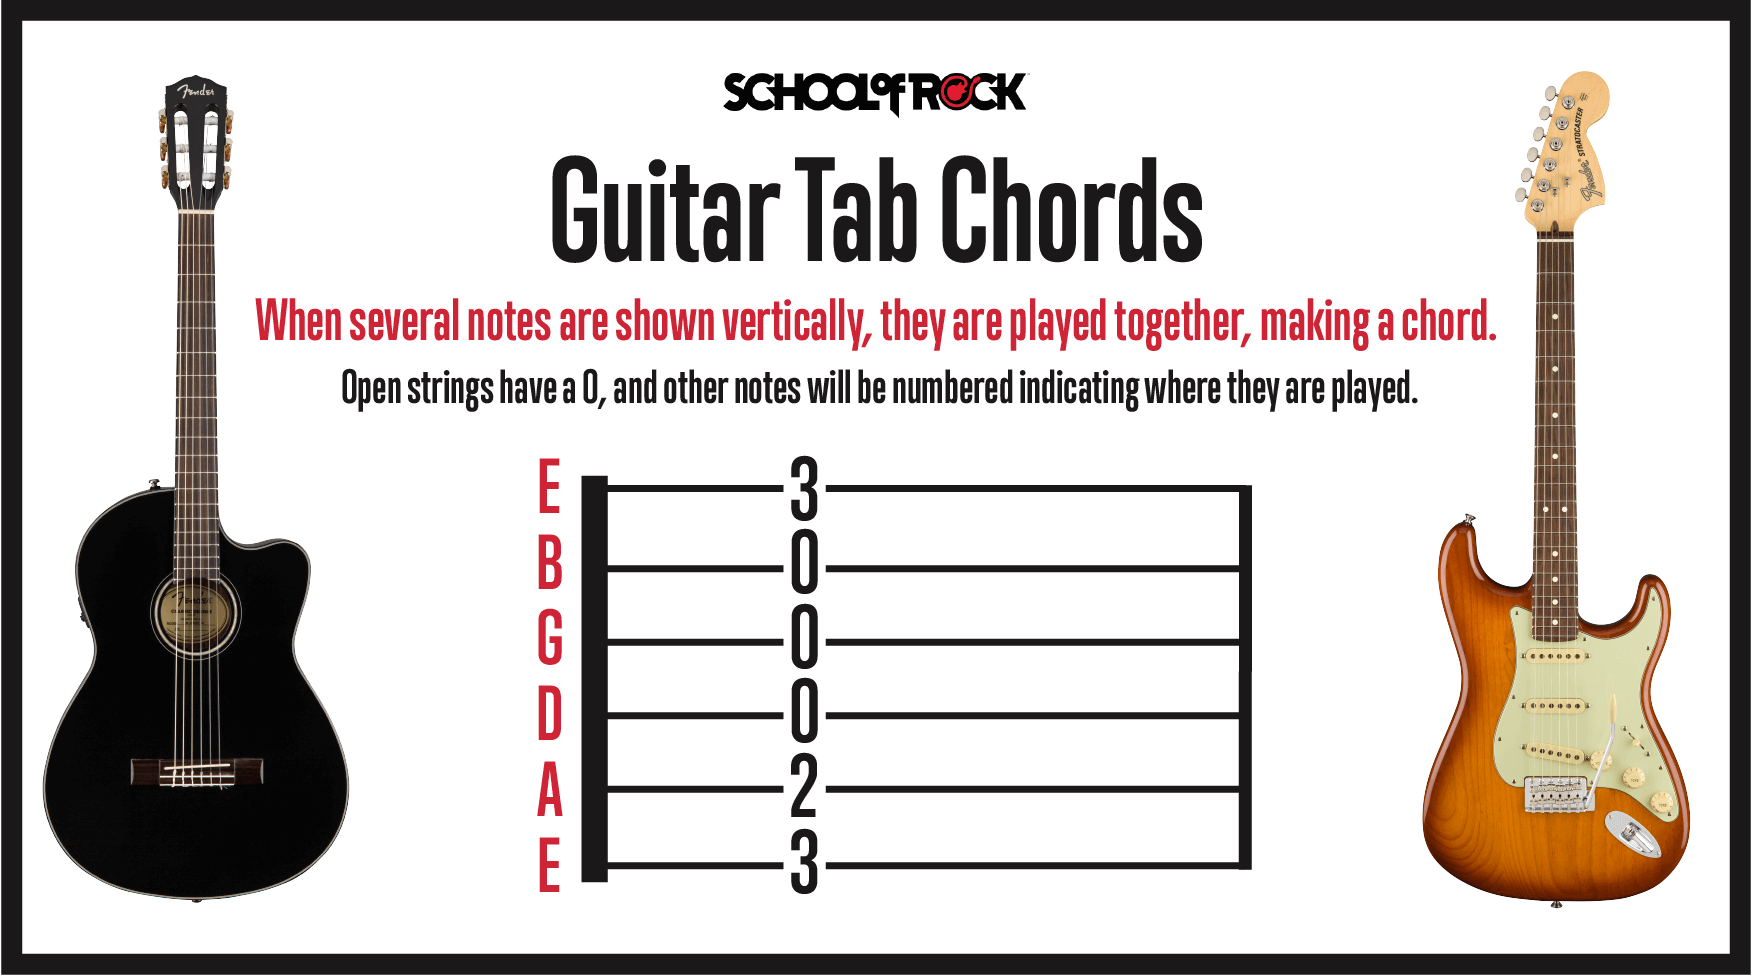 How to read guitar tab chords